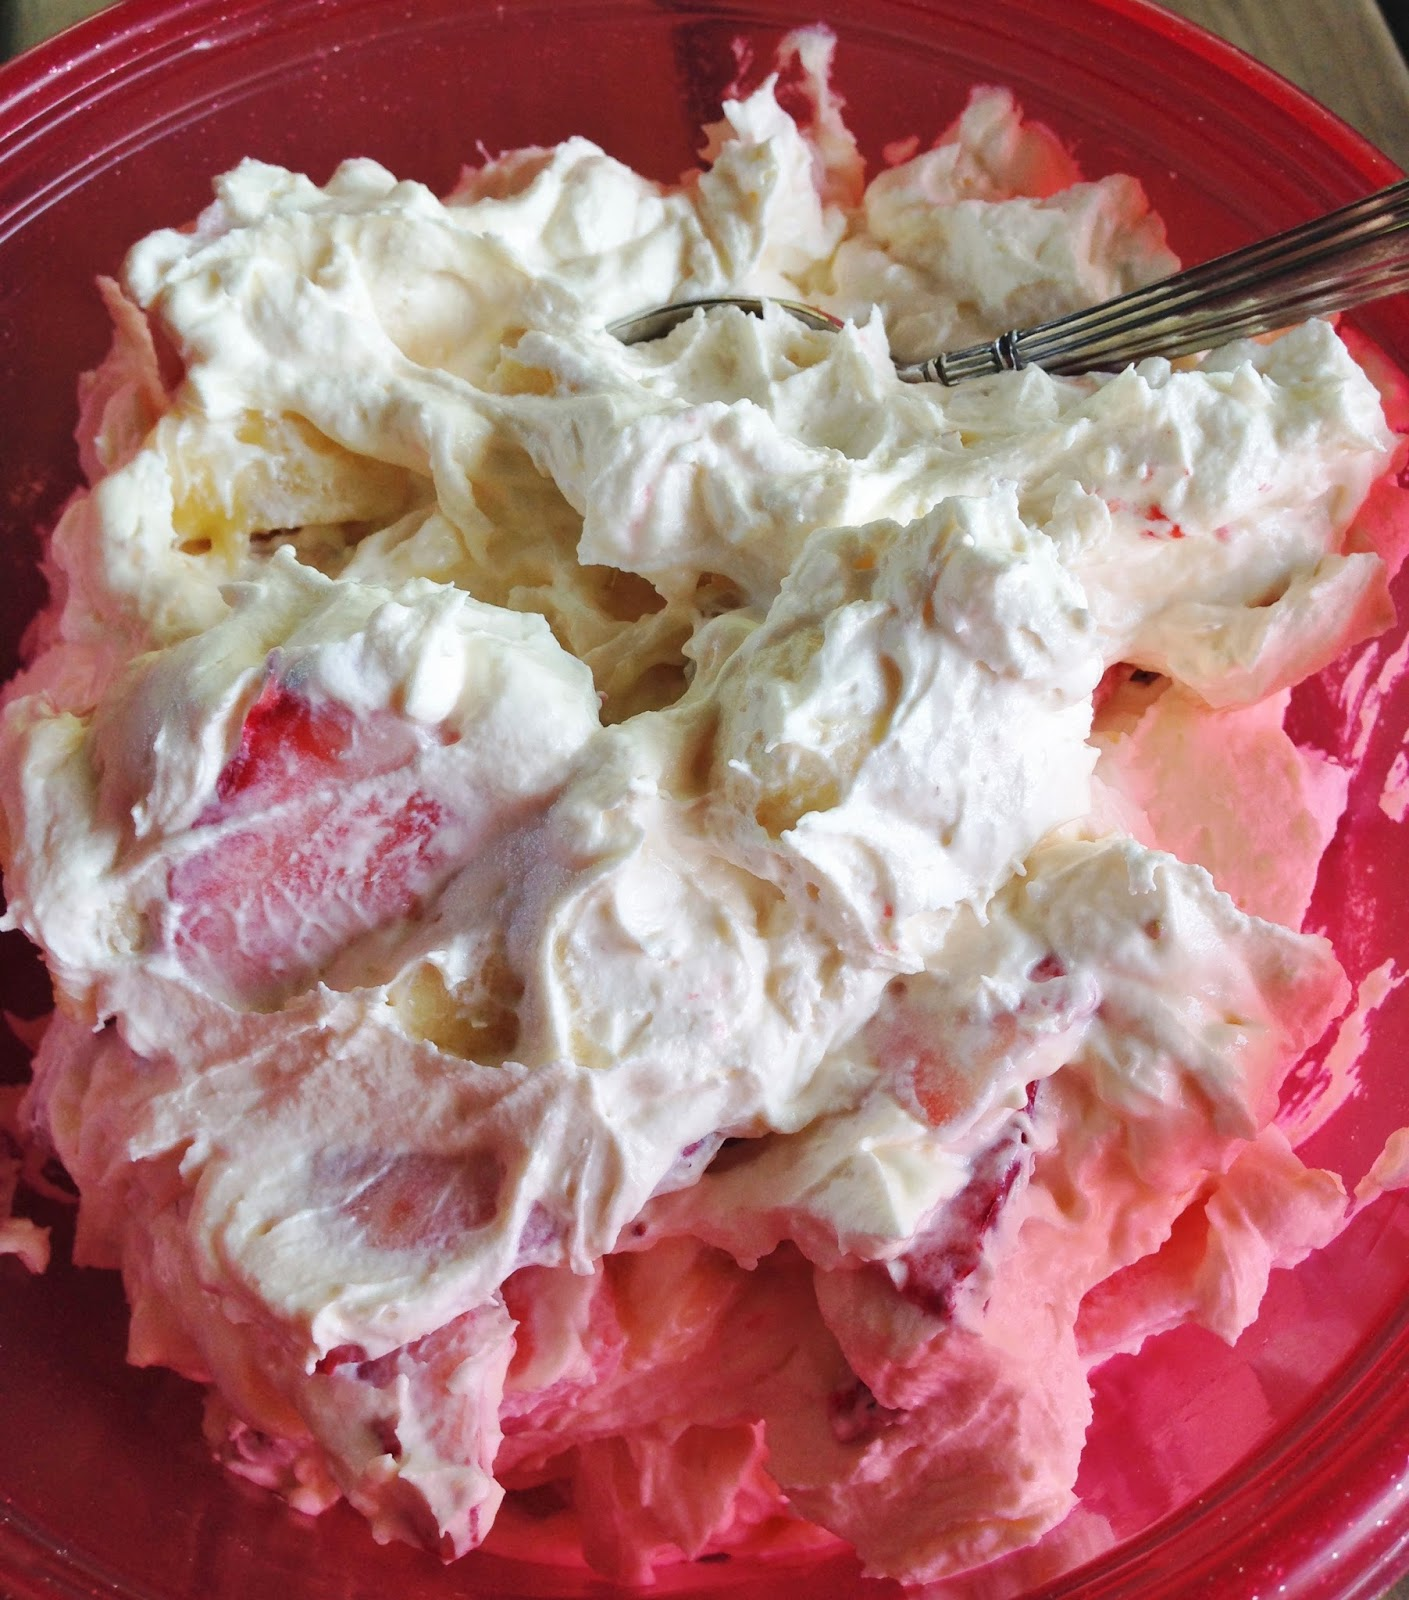 ... with learning activities at home: Strawberry-Banana Cheesecake salad